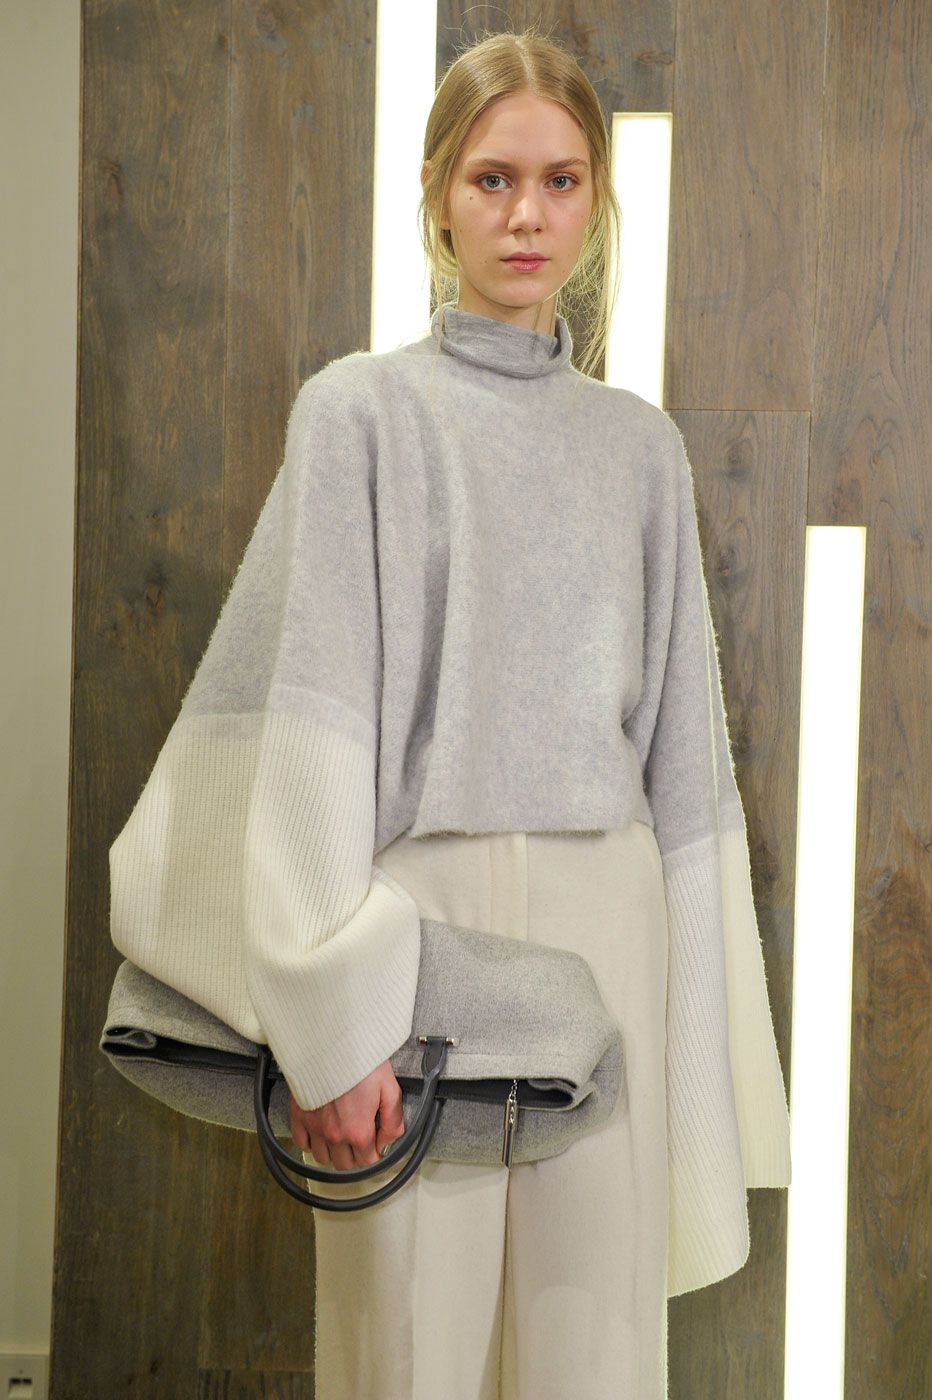 The 40 Best Runway Looks From London Fashion Week (SoFar) images